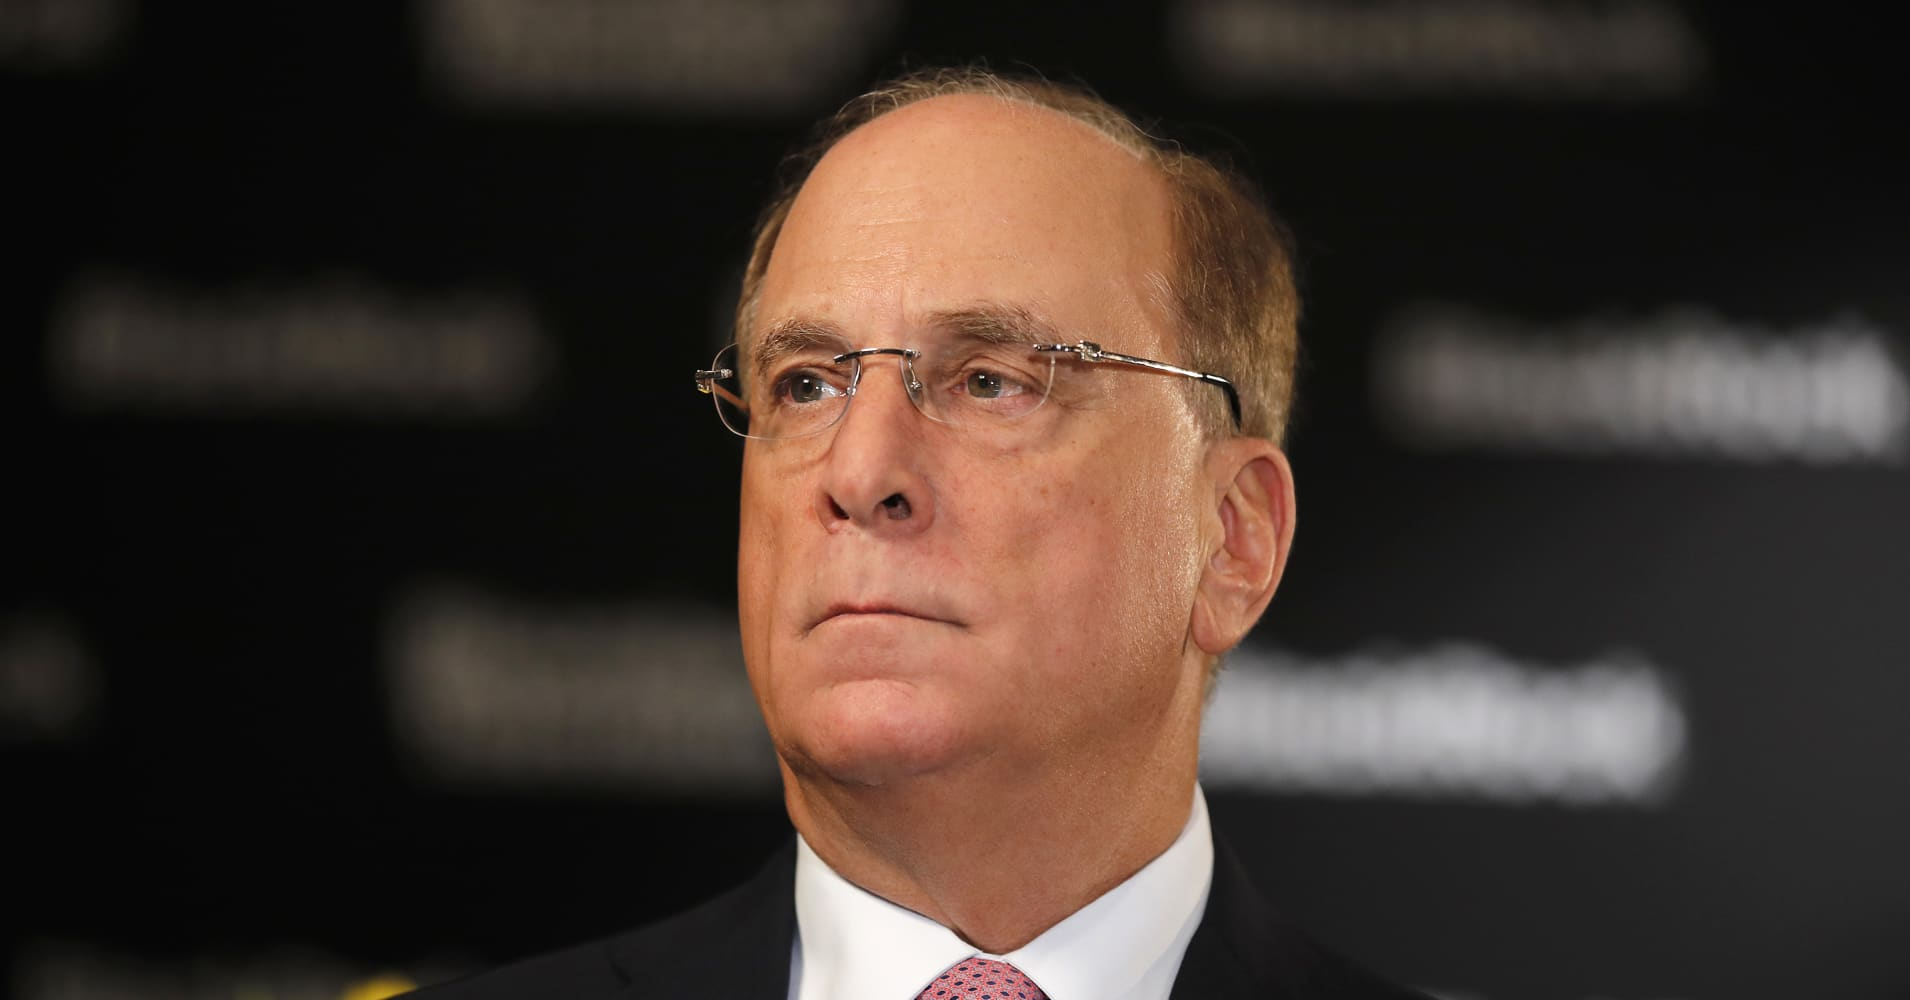 BlackRock's Larry Fink says Middle East must avoid other regional investing mistakes